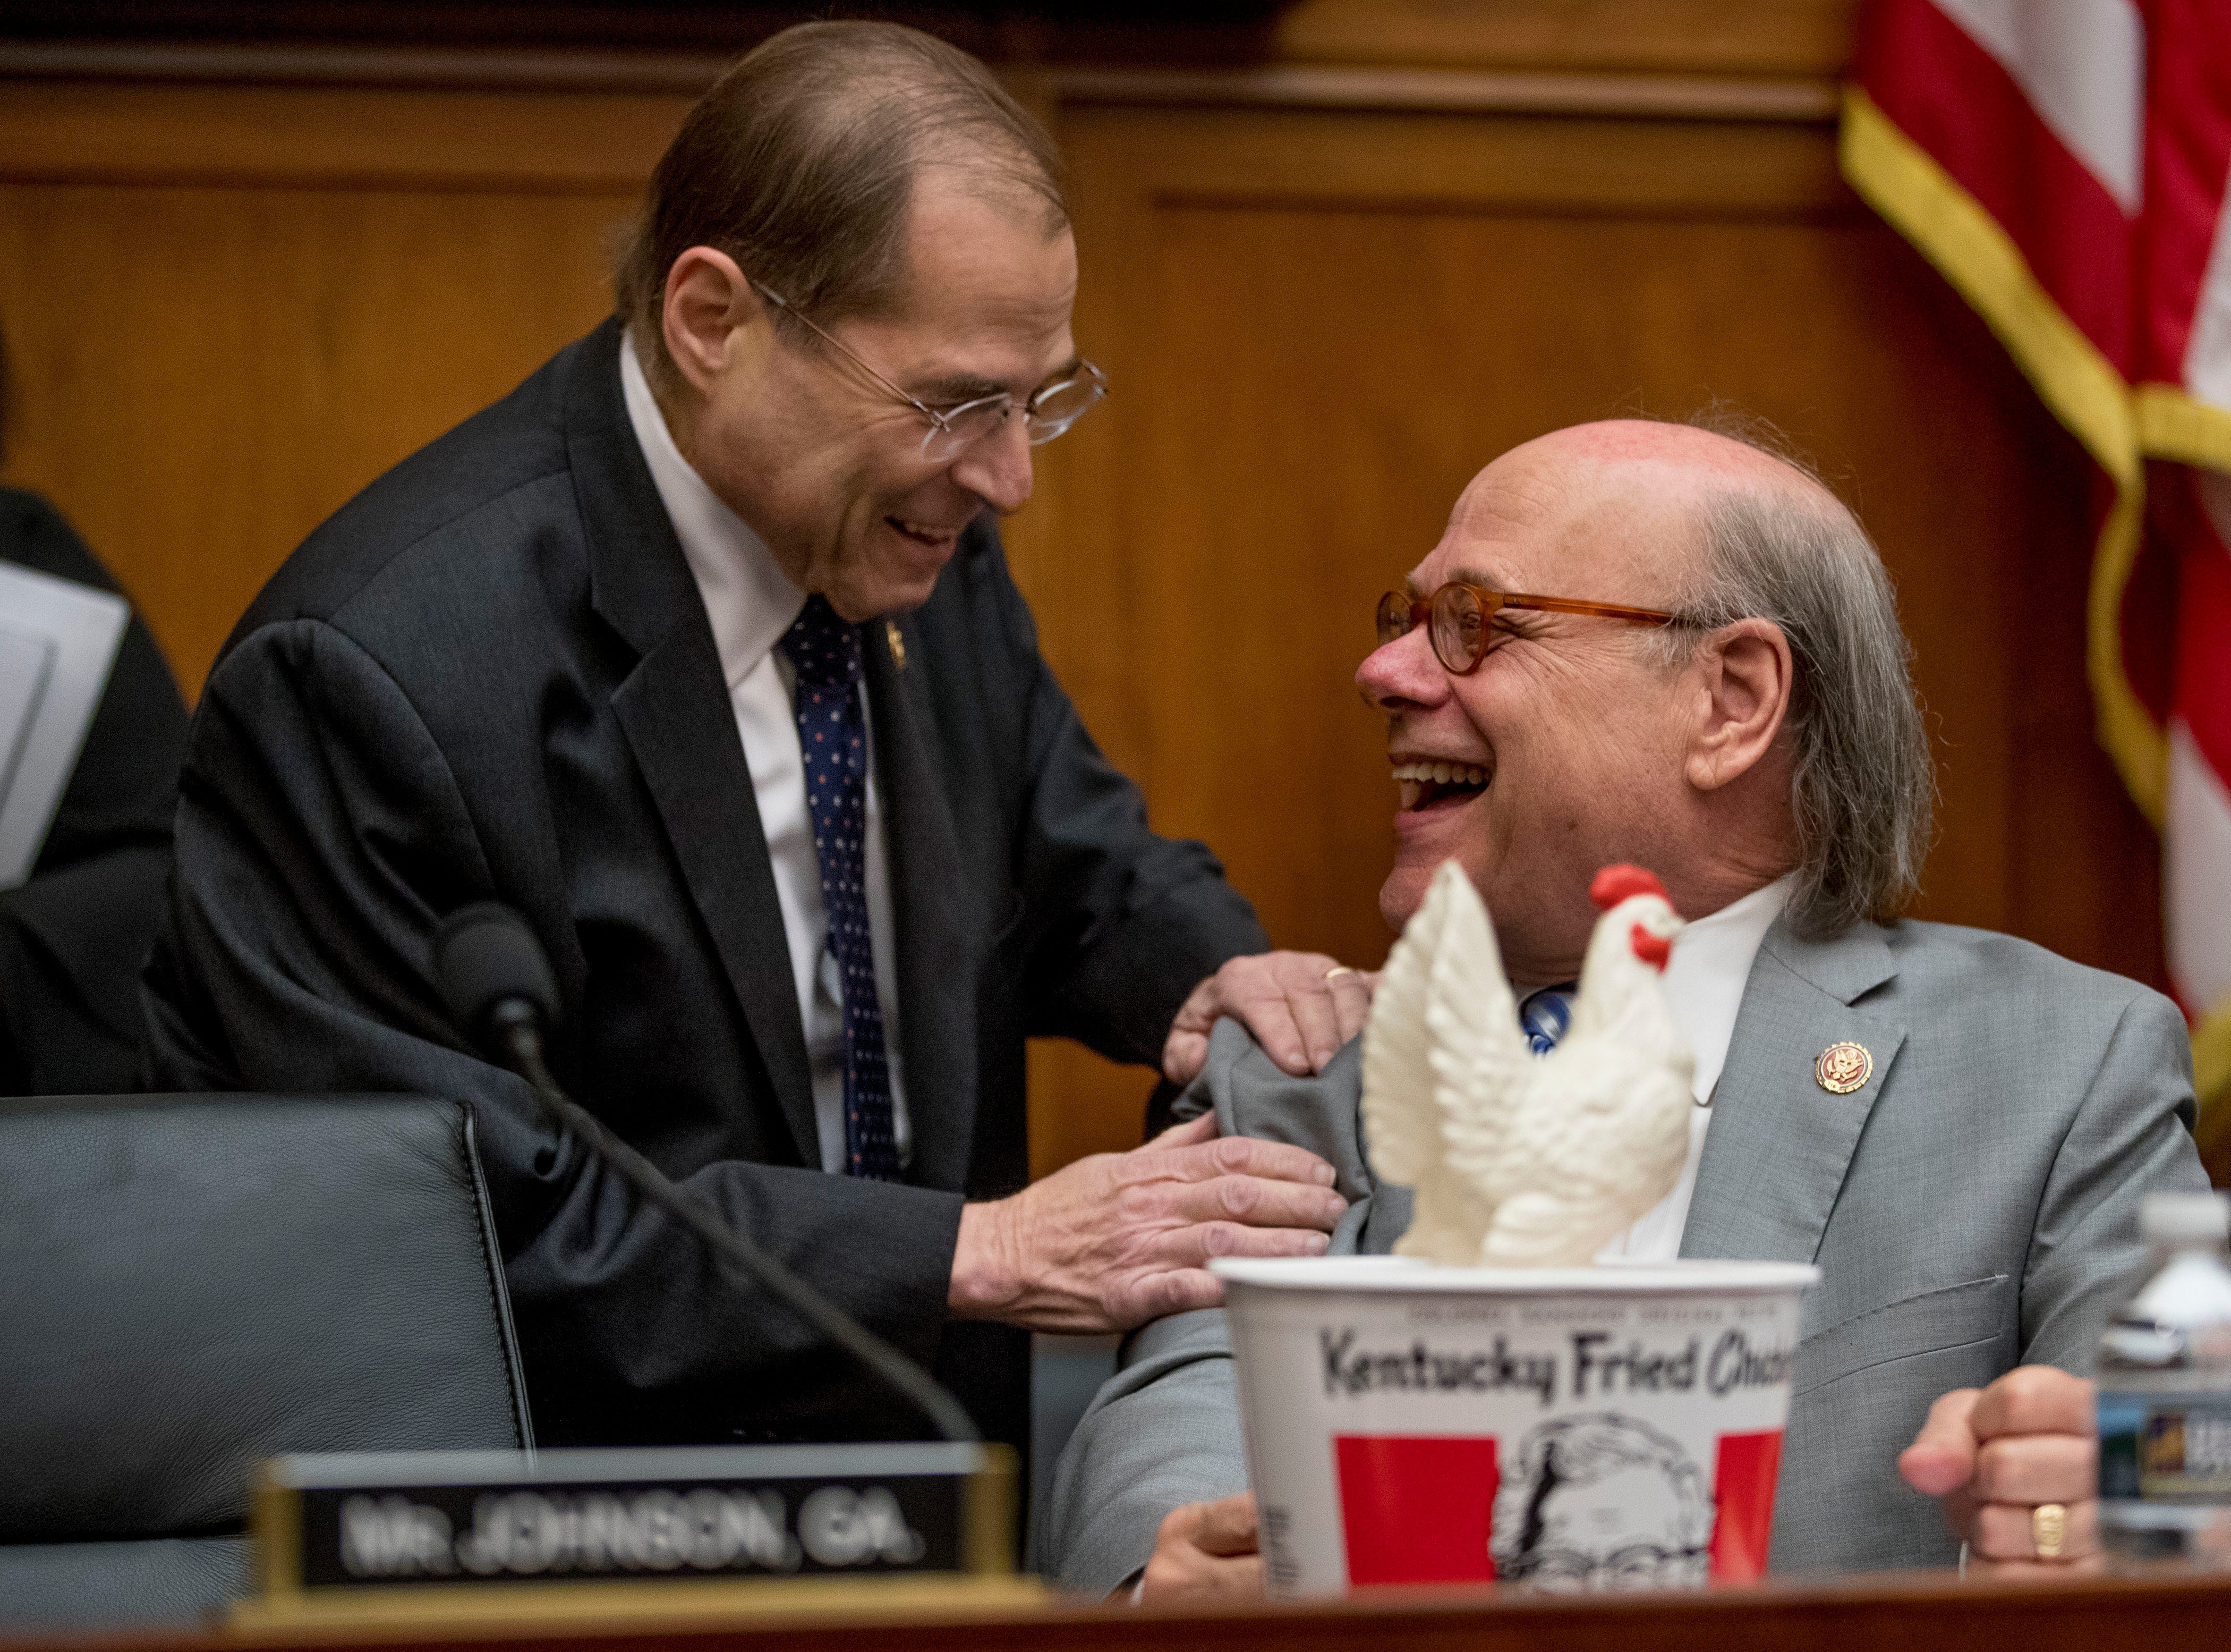 Judiciary Committee Chairman Jerrold Nadler, D-N.Y., left, laughs with Rep. Steve Cohen, D-Tenn., after Cohen arrived with a bucket of fried chicken and a prop chicken at a House Judiciary Committee hearing on Capitol Hill in Washington, Thursday, May 2, 2019. The witness chair was without its witness, as Attorney General William Barr informed the Democrat-controlled panel he was skipping the hearing on special counsel Robert Mueller's report, escalating an already acrimonious battle between Democrats and the Justice Department.